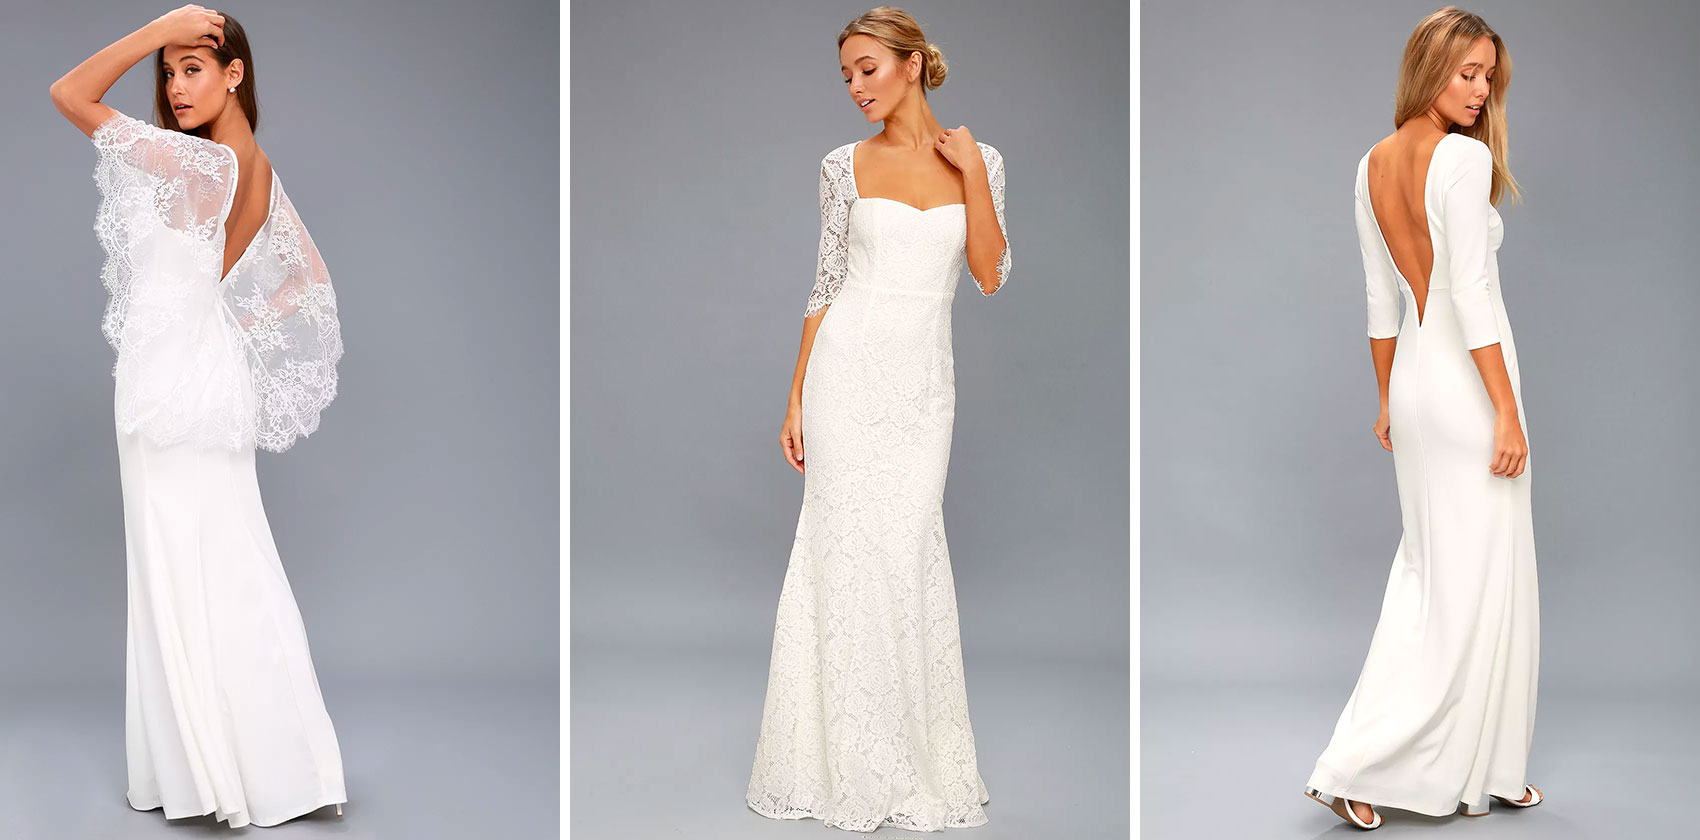 Our Everly White Lace Maxi Dress Is Also An Amazing Sleeveless Bridal Gown Featuring A Classic Silhouette In Romantic And Plunging Neckline With: Lulus Beaded Bodice Wedding Dress At Websimilar.org